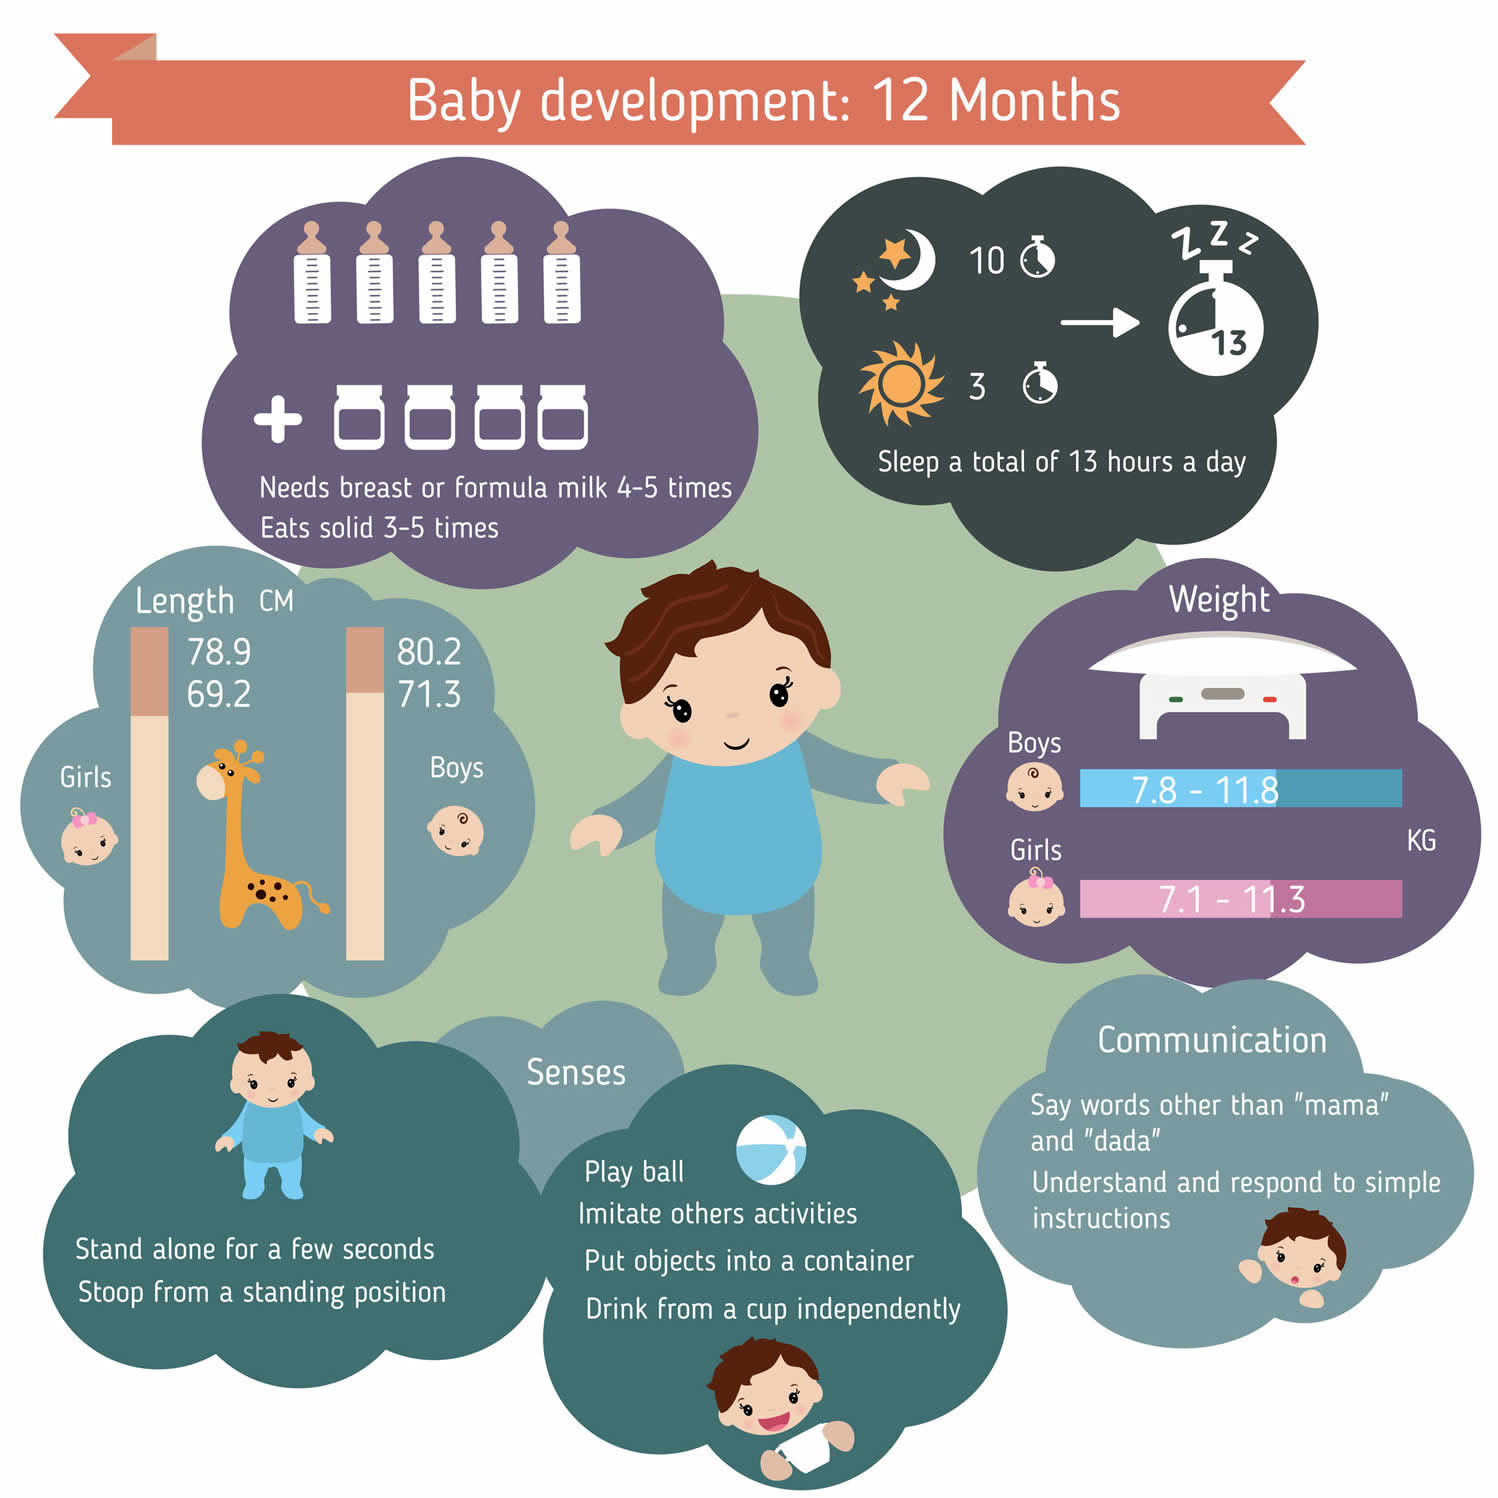 12 month infant care guide